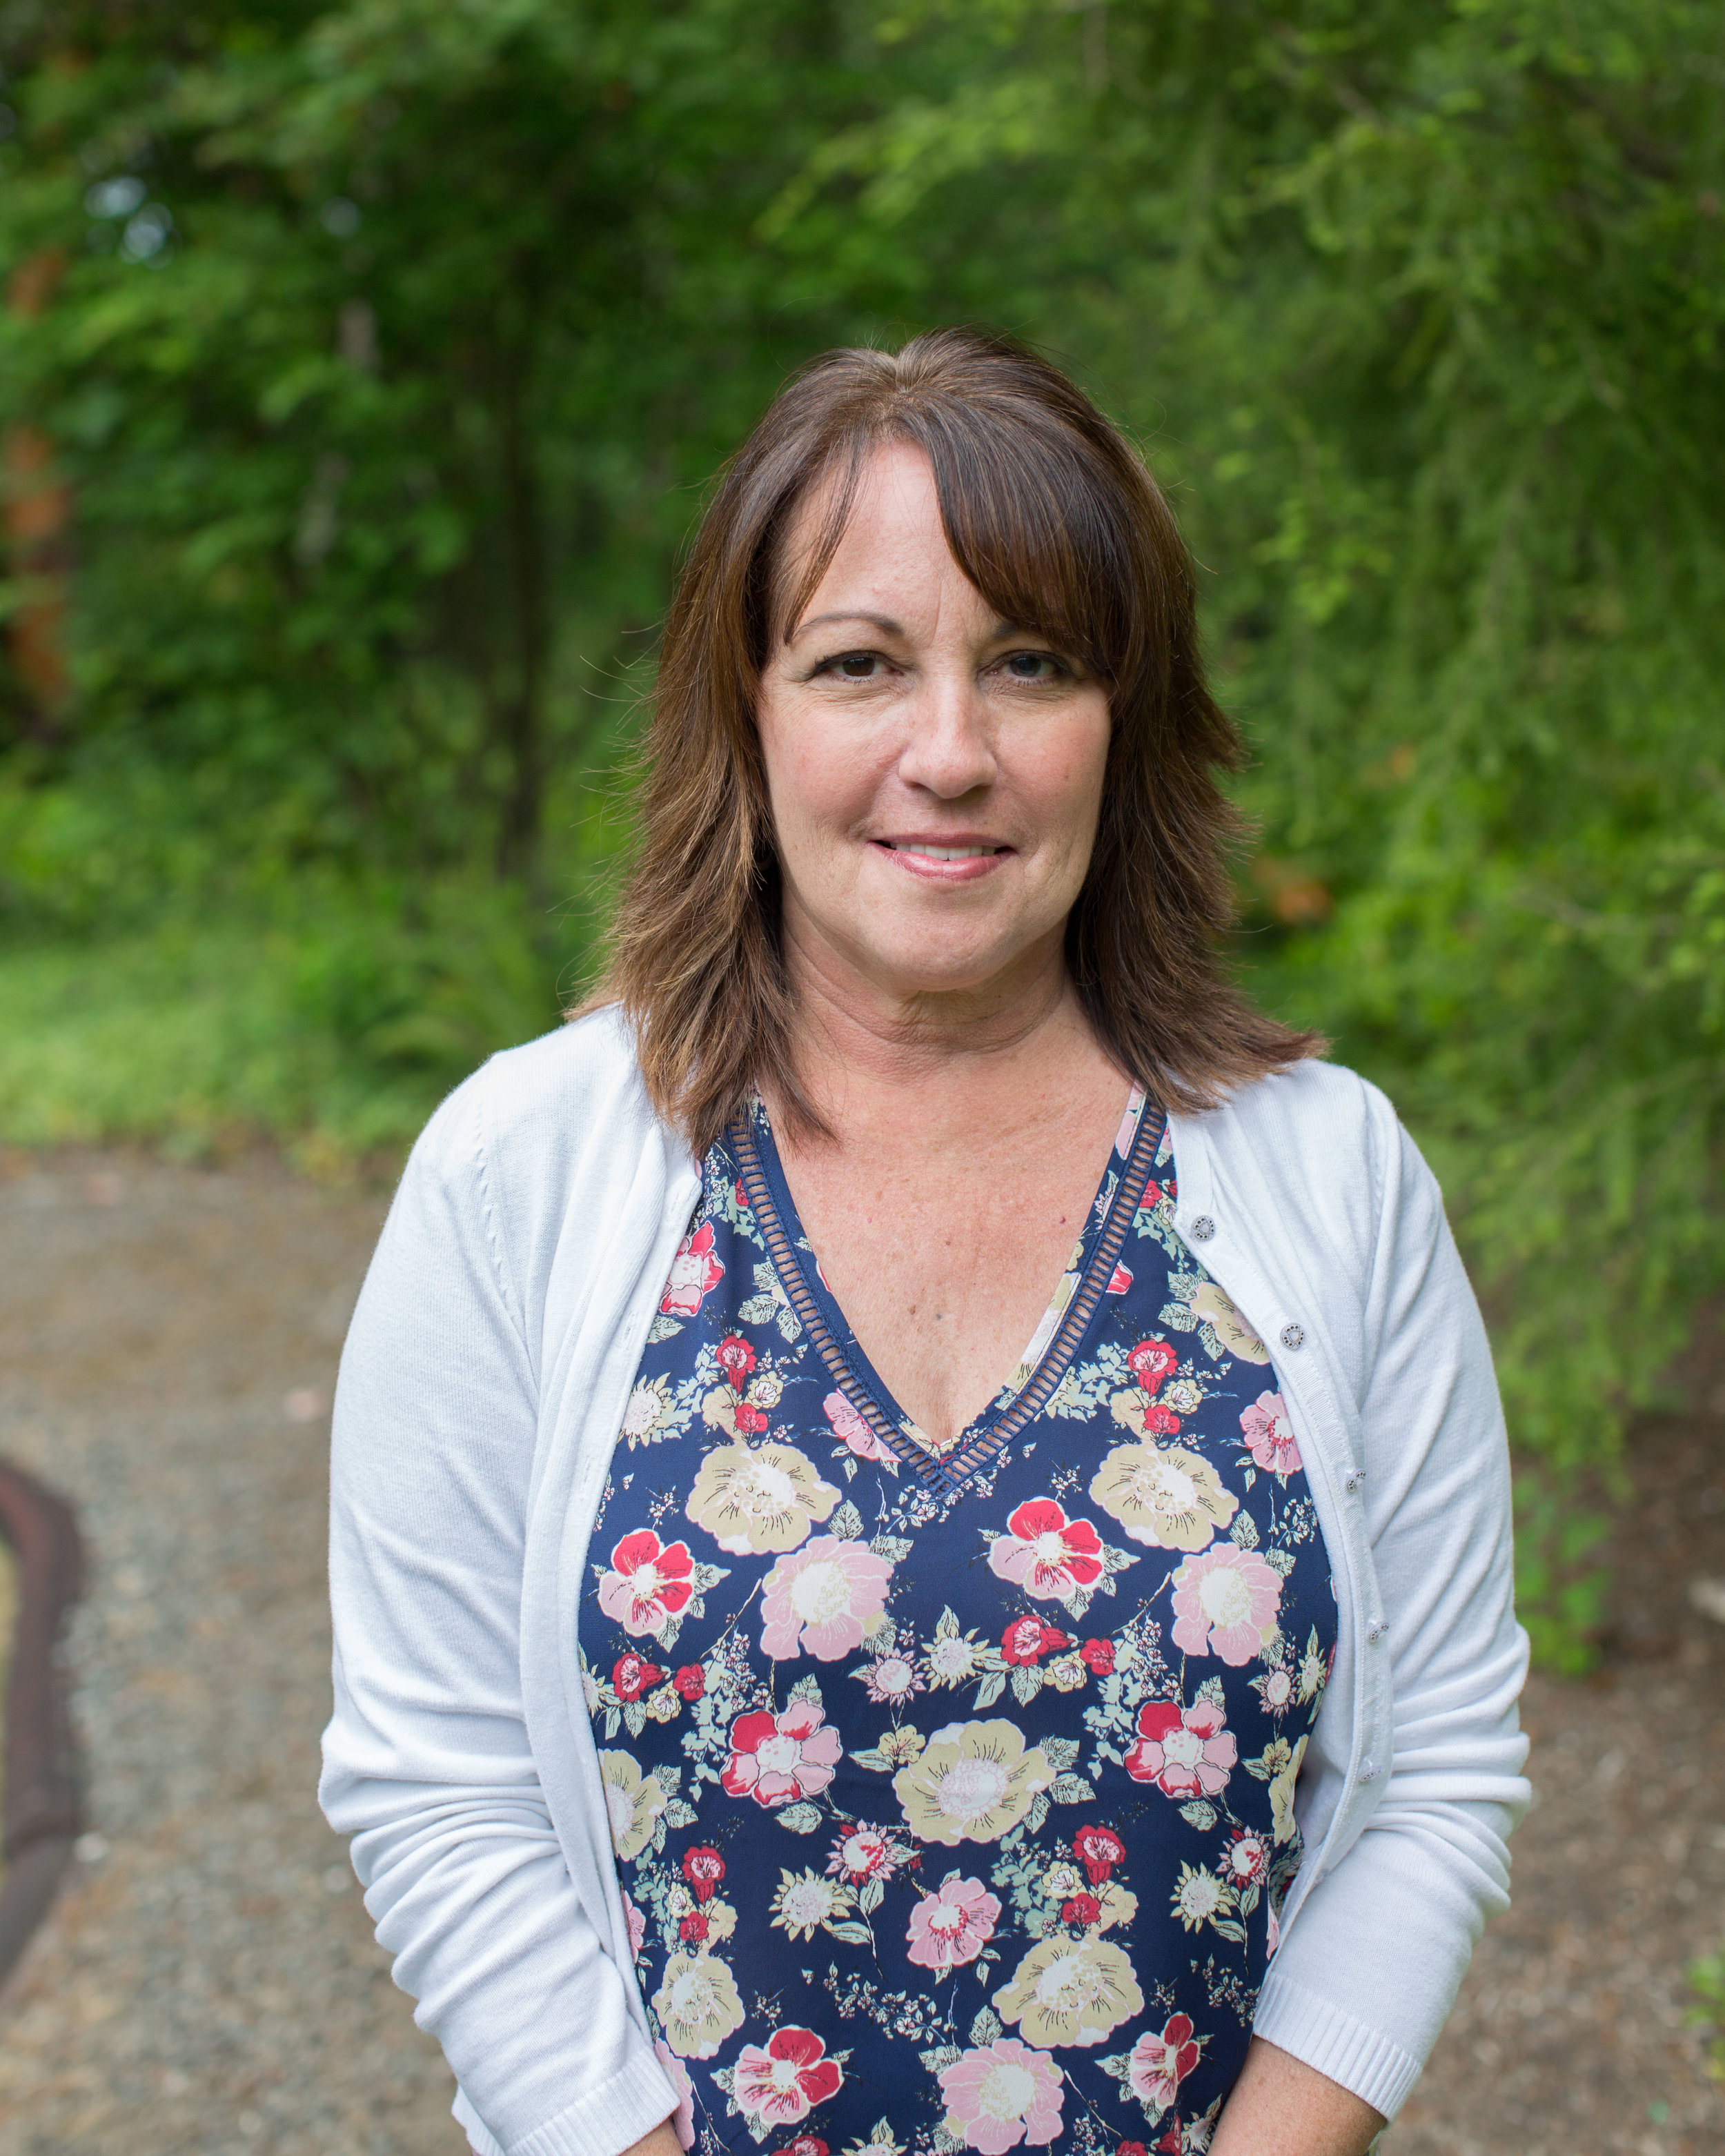 ISLAND KIDS COORDINATOR - Francine Haug: Francine is the Director of Island Kids, Pre K. She loves serving and sharing the Gospel with Island Kids. She has years of experience keeping kids safe and letting them know that they are loved.